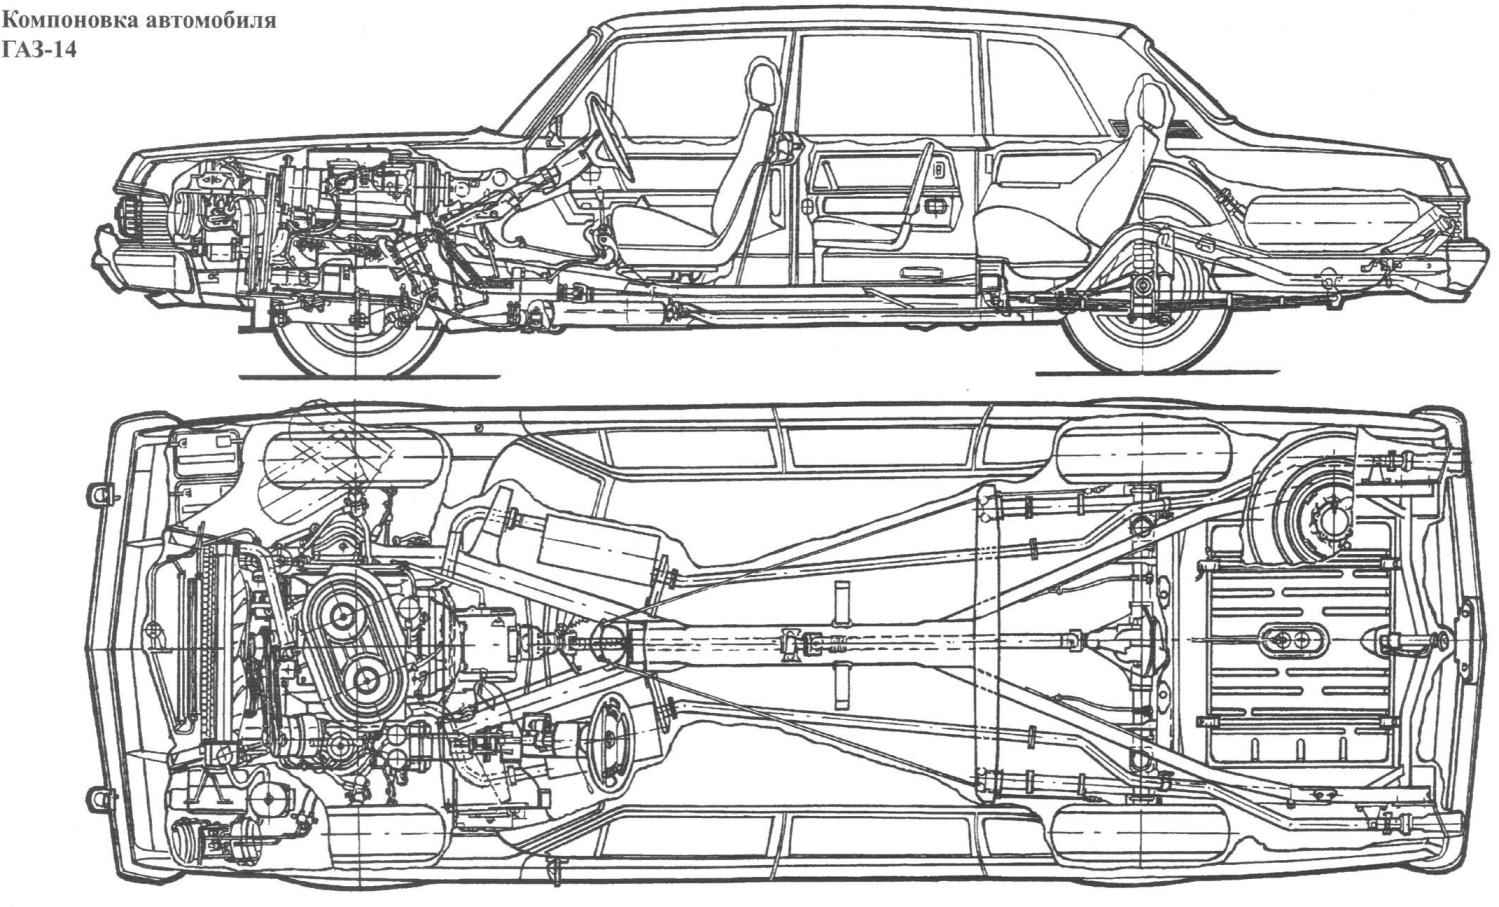 The layout of the car GAZ-14